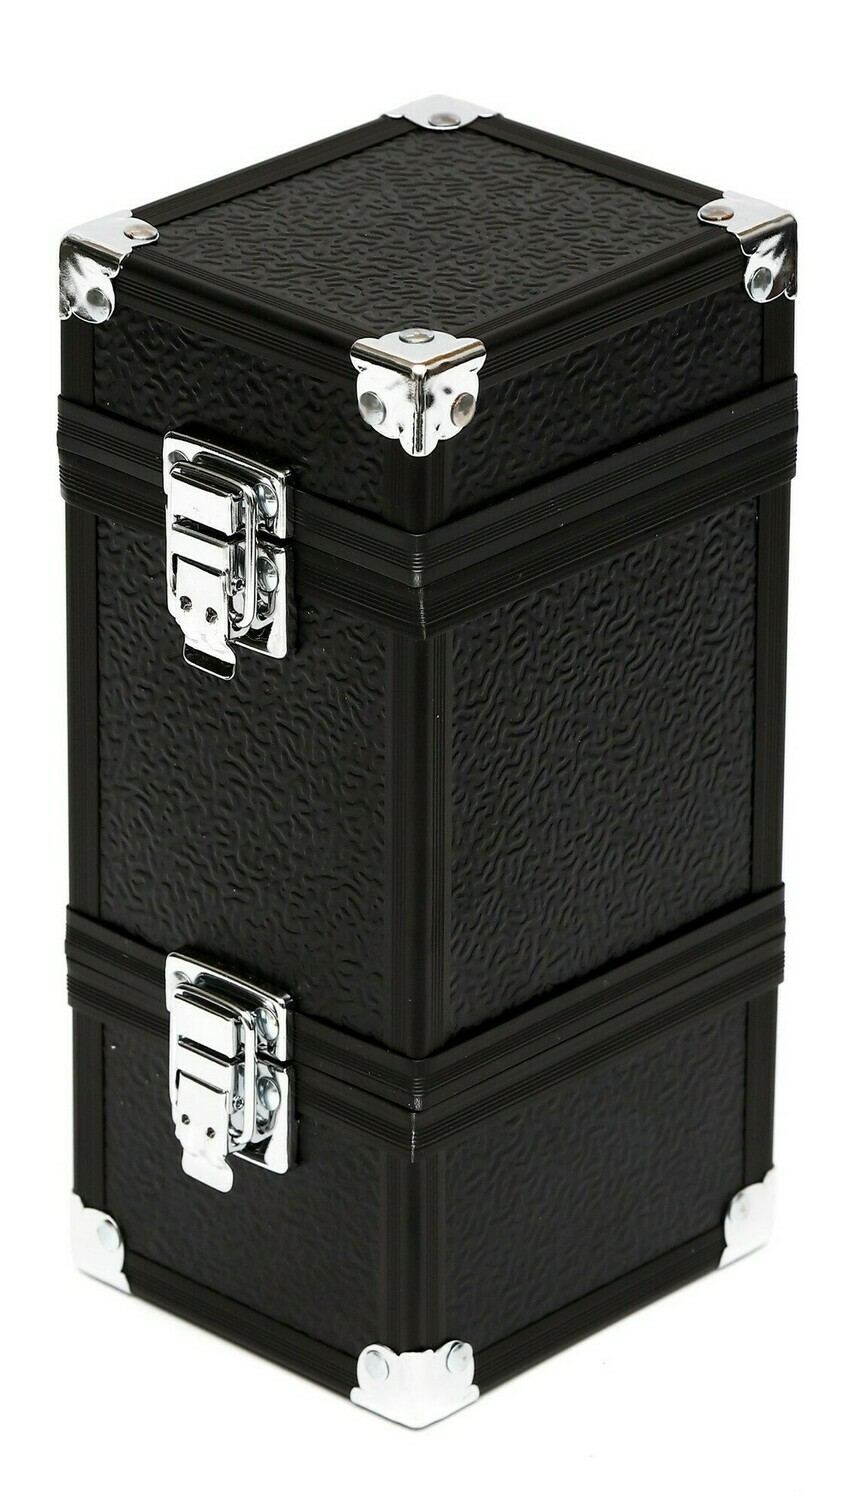 The Monolith - Combinable Full Metal Deck case - Black